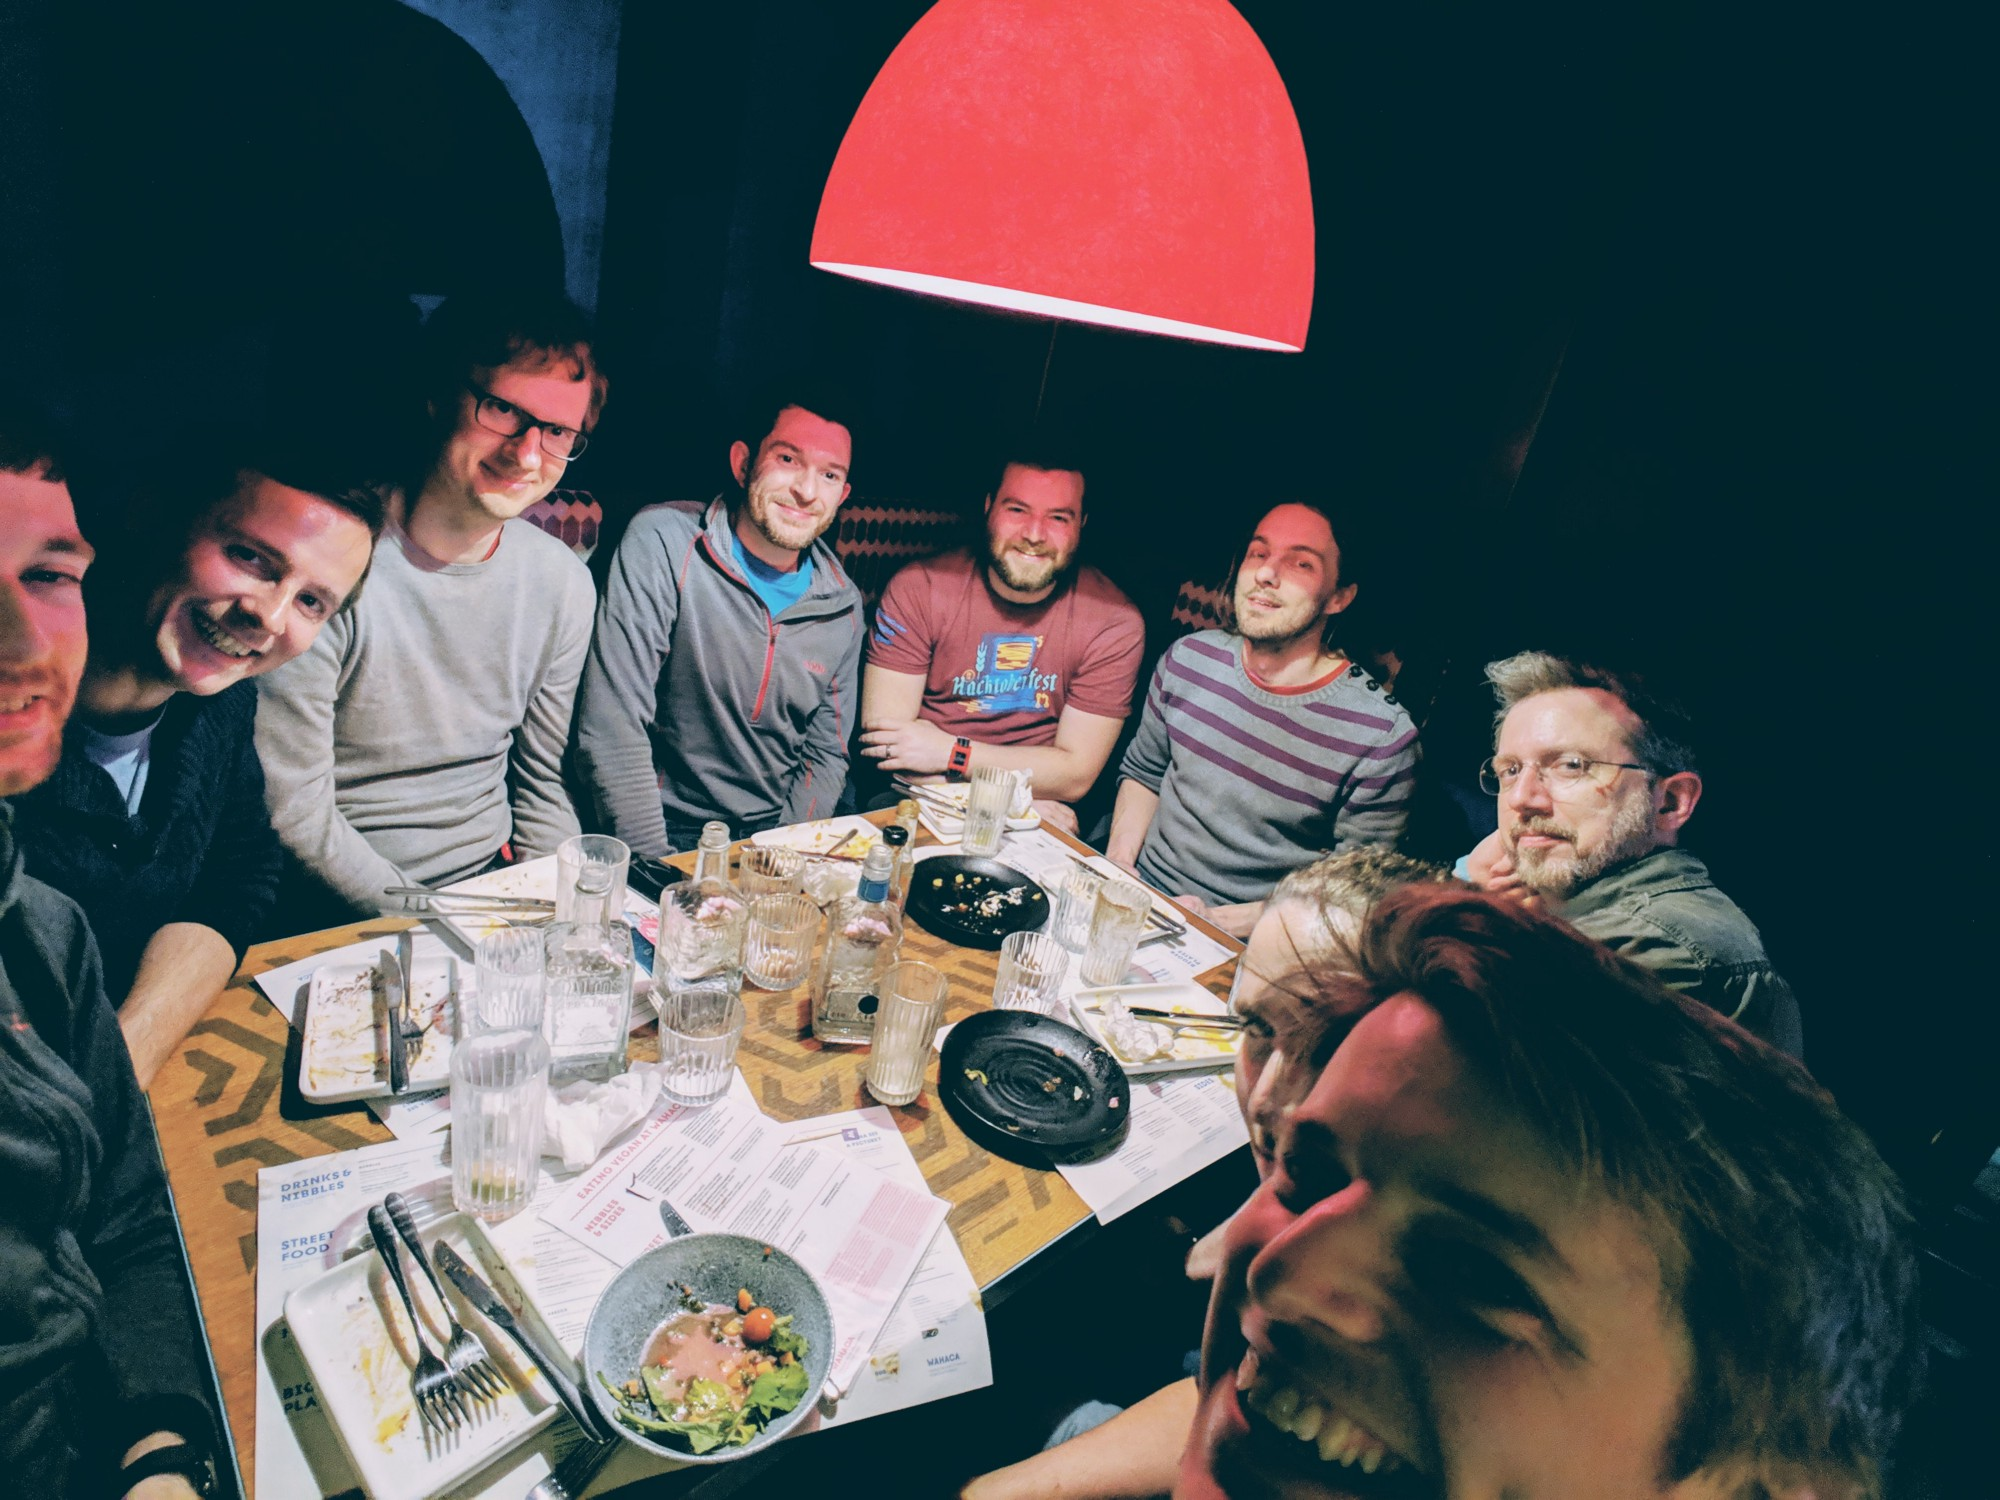 Trying to fit the whole (cramped) Wahaca dinner table into one photo. **Clockwise from left:** Philip Withnall, Florian Müllner, Kalev Lember, Allan Day, Cassidy Blaede, Iain Lane, Nathan Willis, Georges Stavracas, Nick Richards.